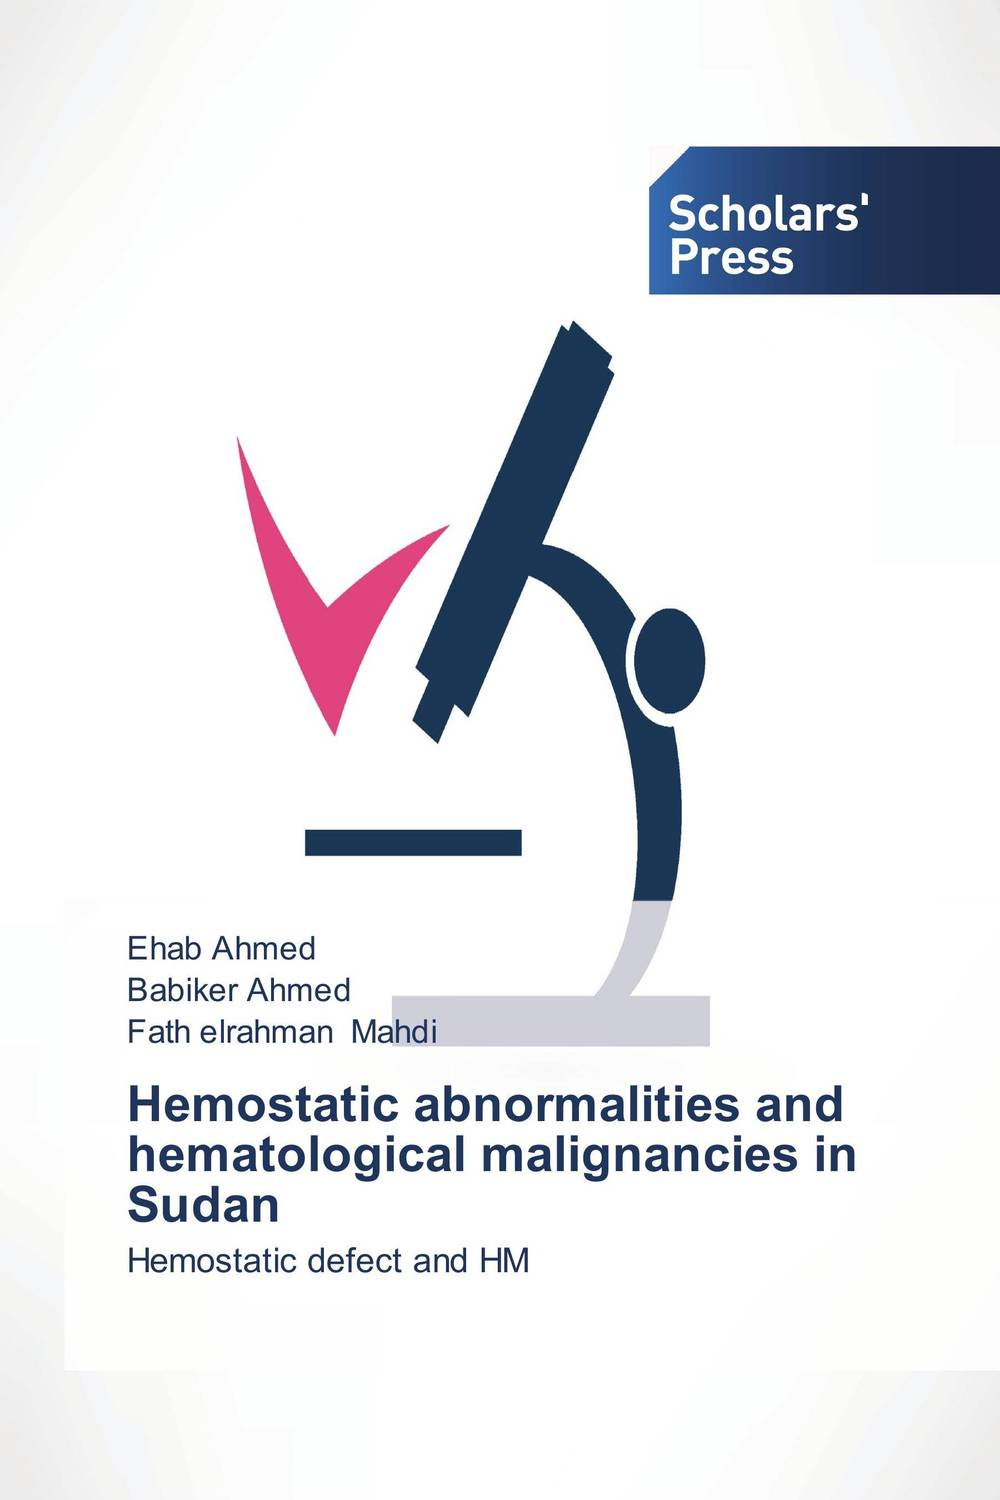 Hemostatic abnormalities and hematological malignancies in Sudan diagnostic aids in potentially malignant disorders and malignancies